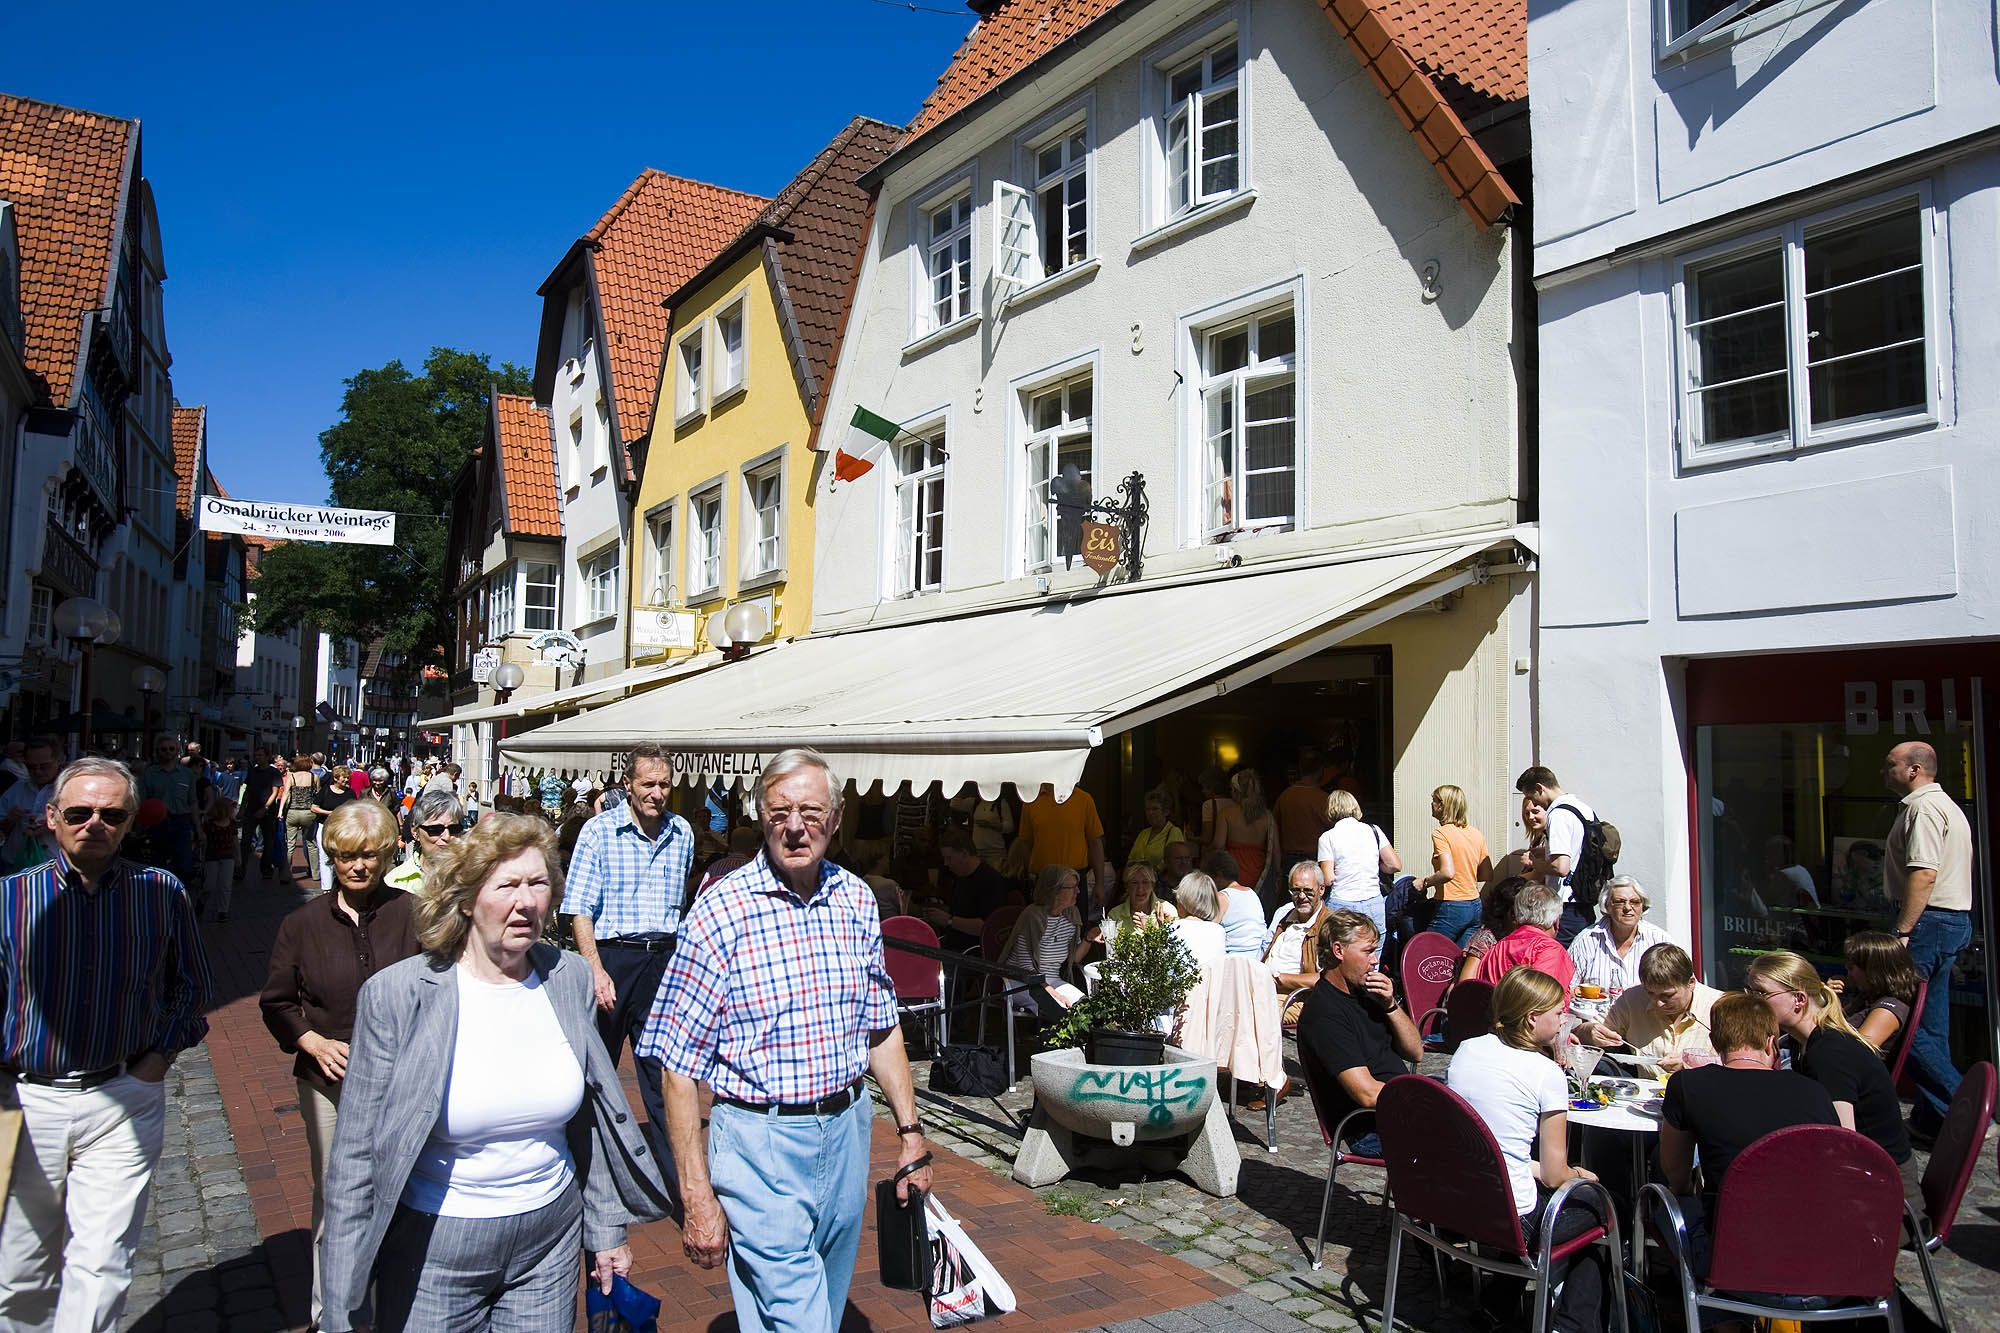 Shopping In The Old Town Of Osnabruck Osnabruck